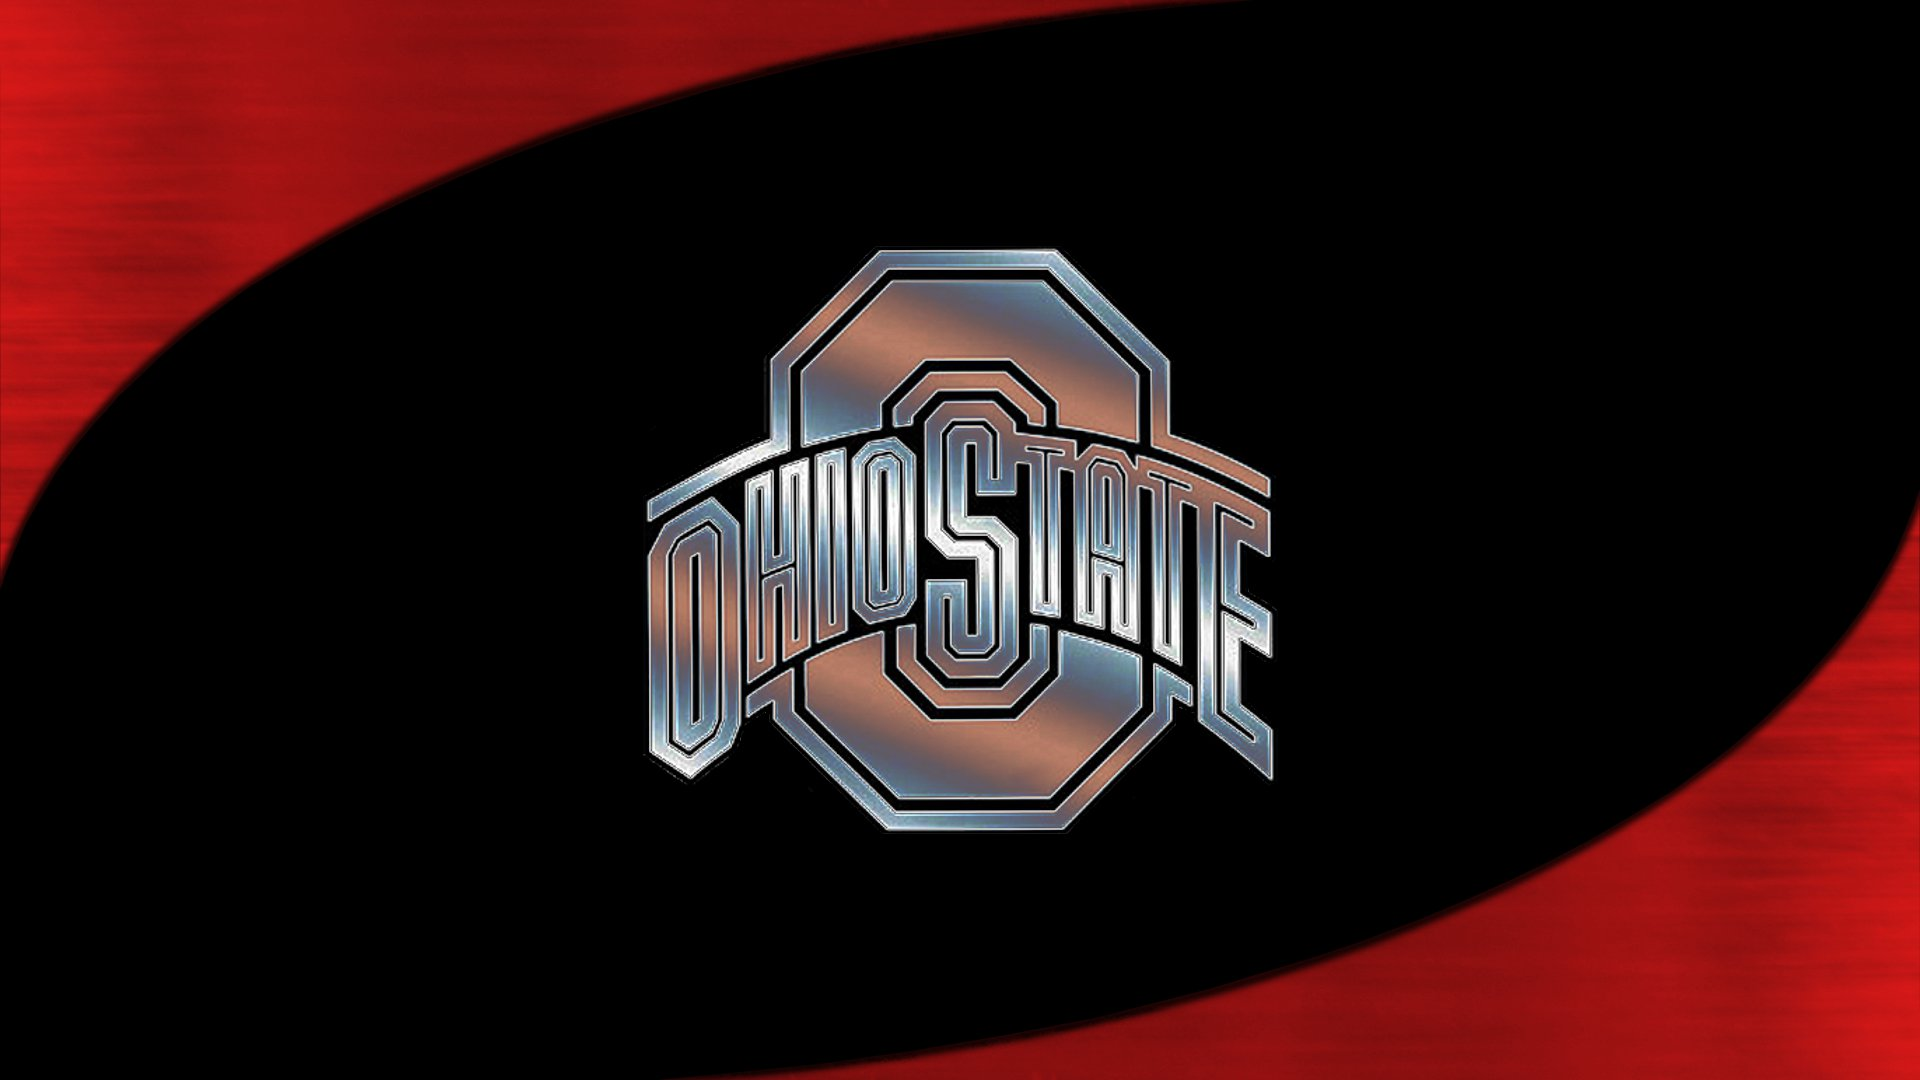 OSU Wallpaper 144 OHIO STATE DESKTOP WALLPAPERS Pinterest 1920x1080